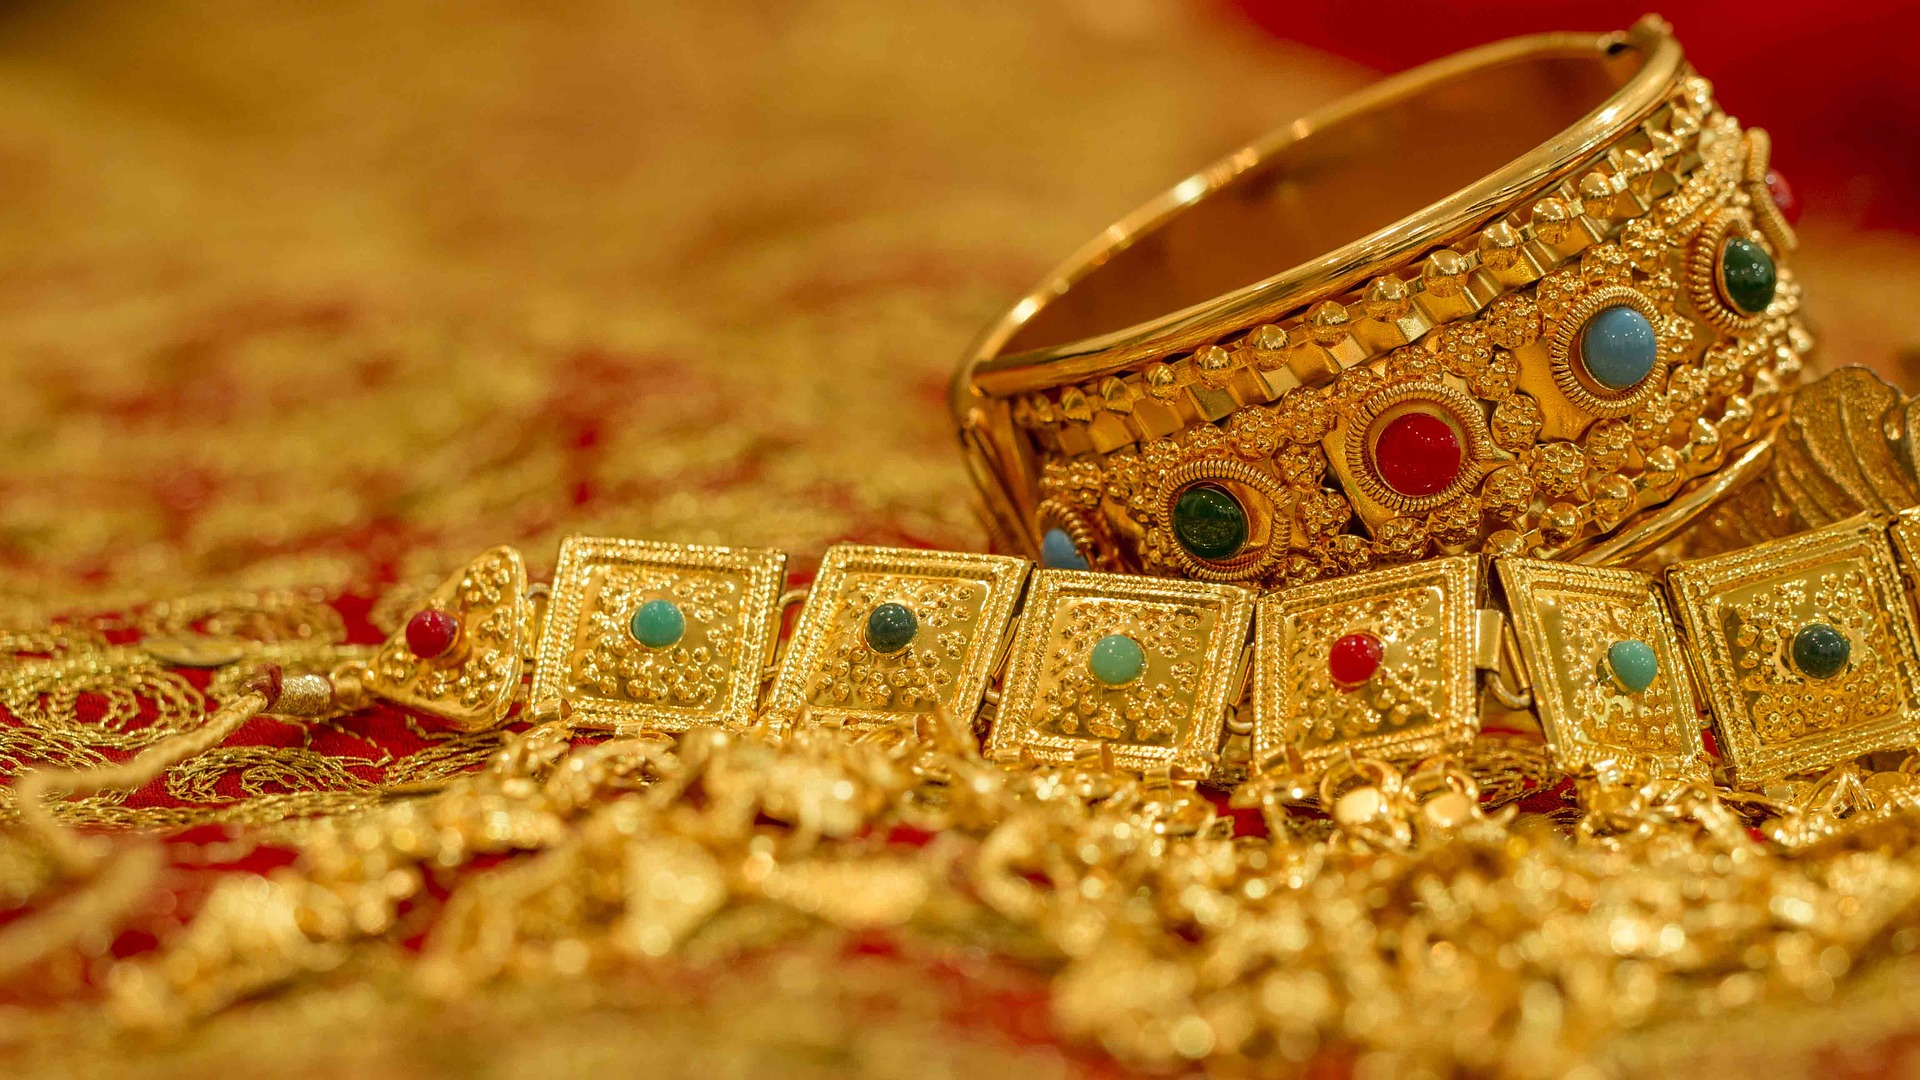 gold jewellery | EconAlerts